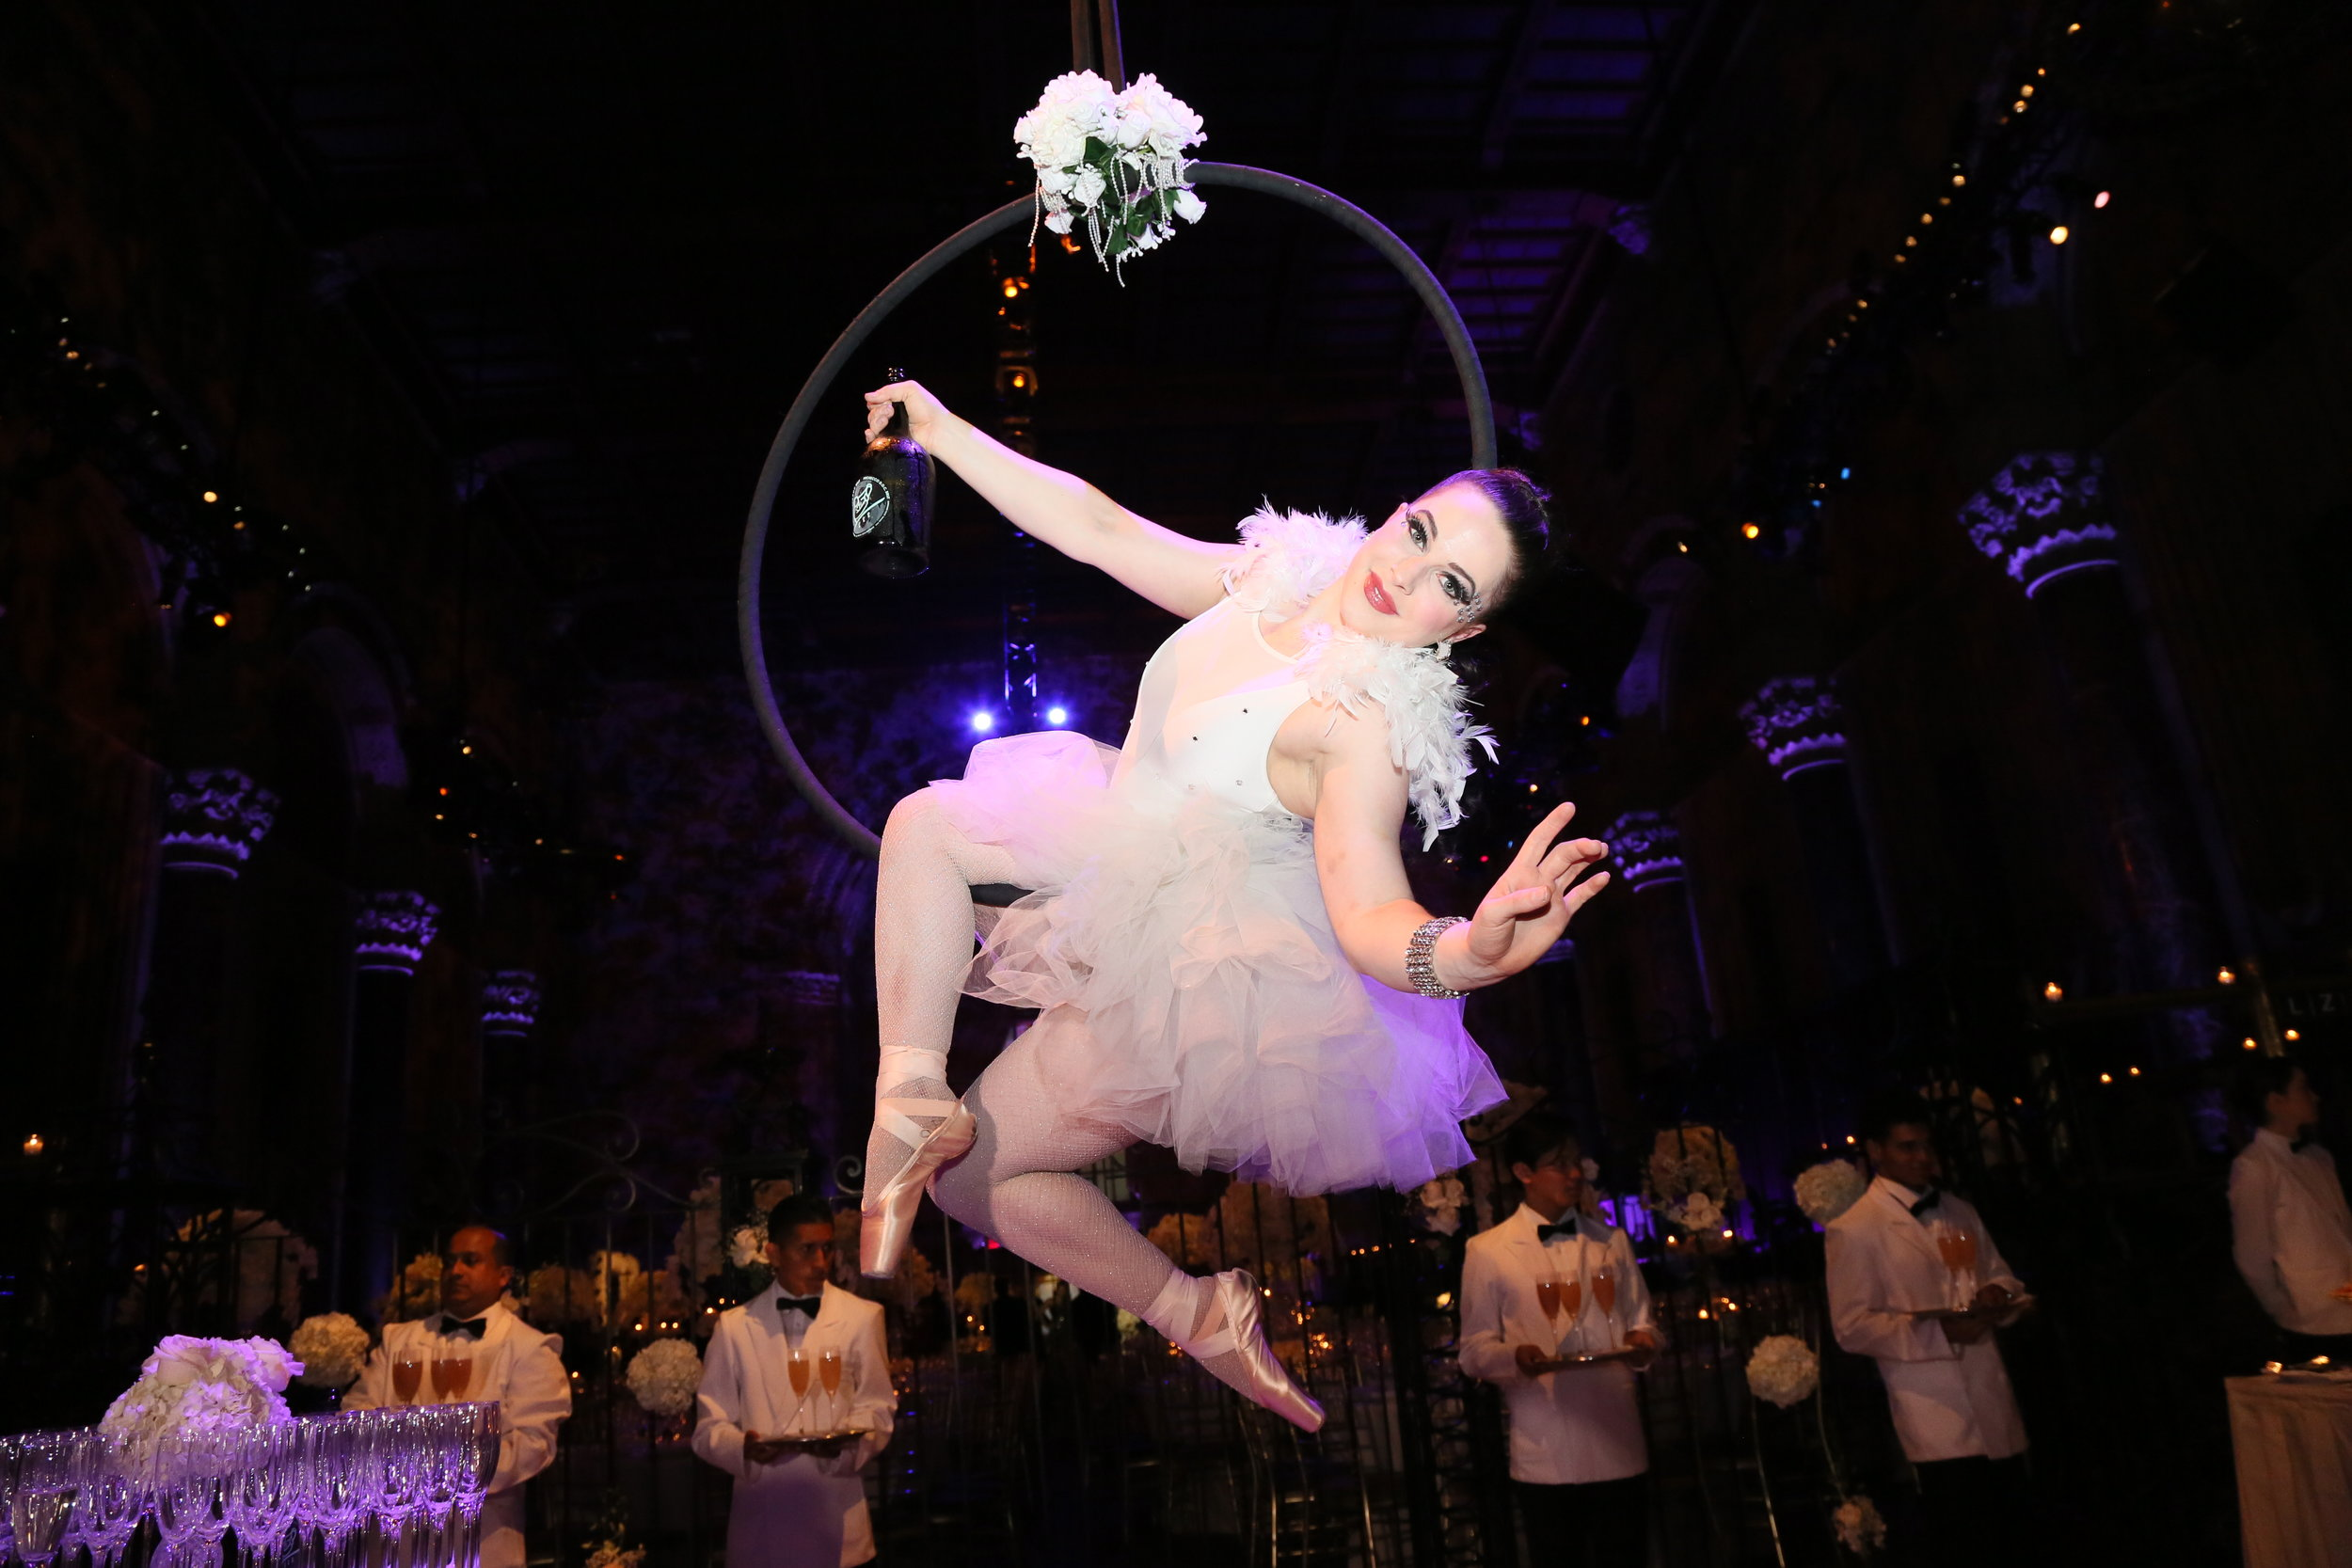 Cirque Central Winter Wonderland Aerial Champagne Service Ballerina for Wedding at Cipriani